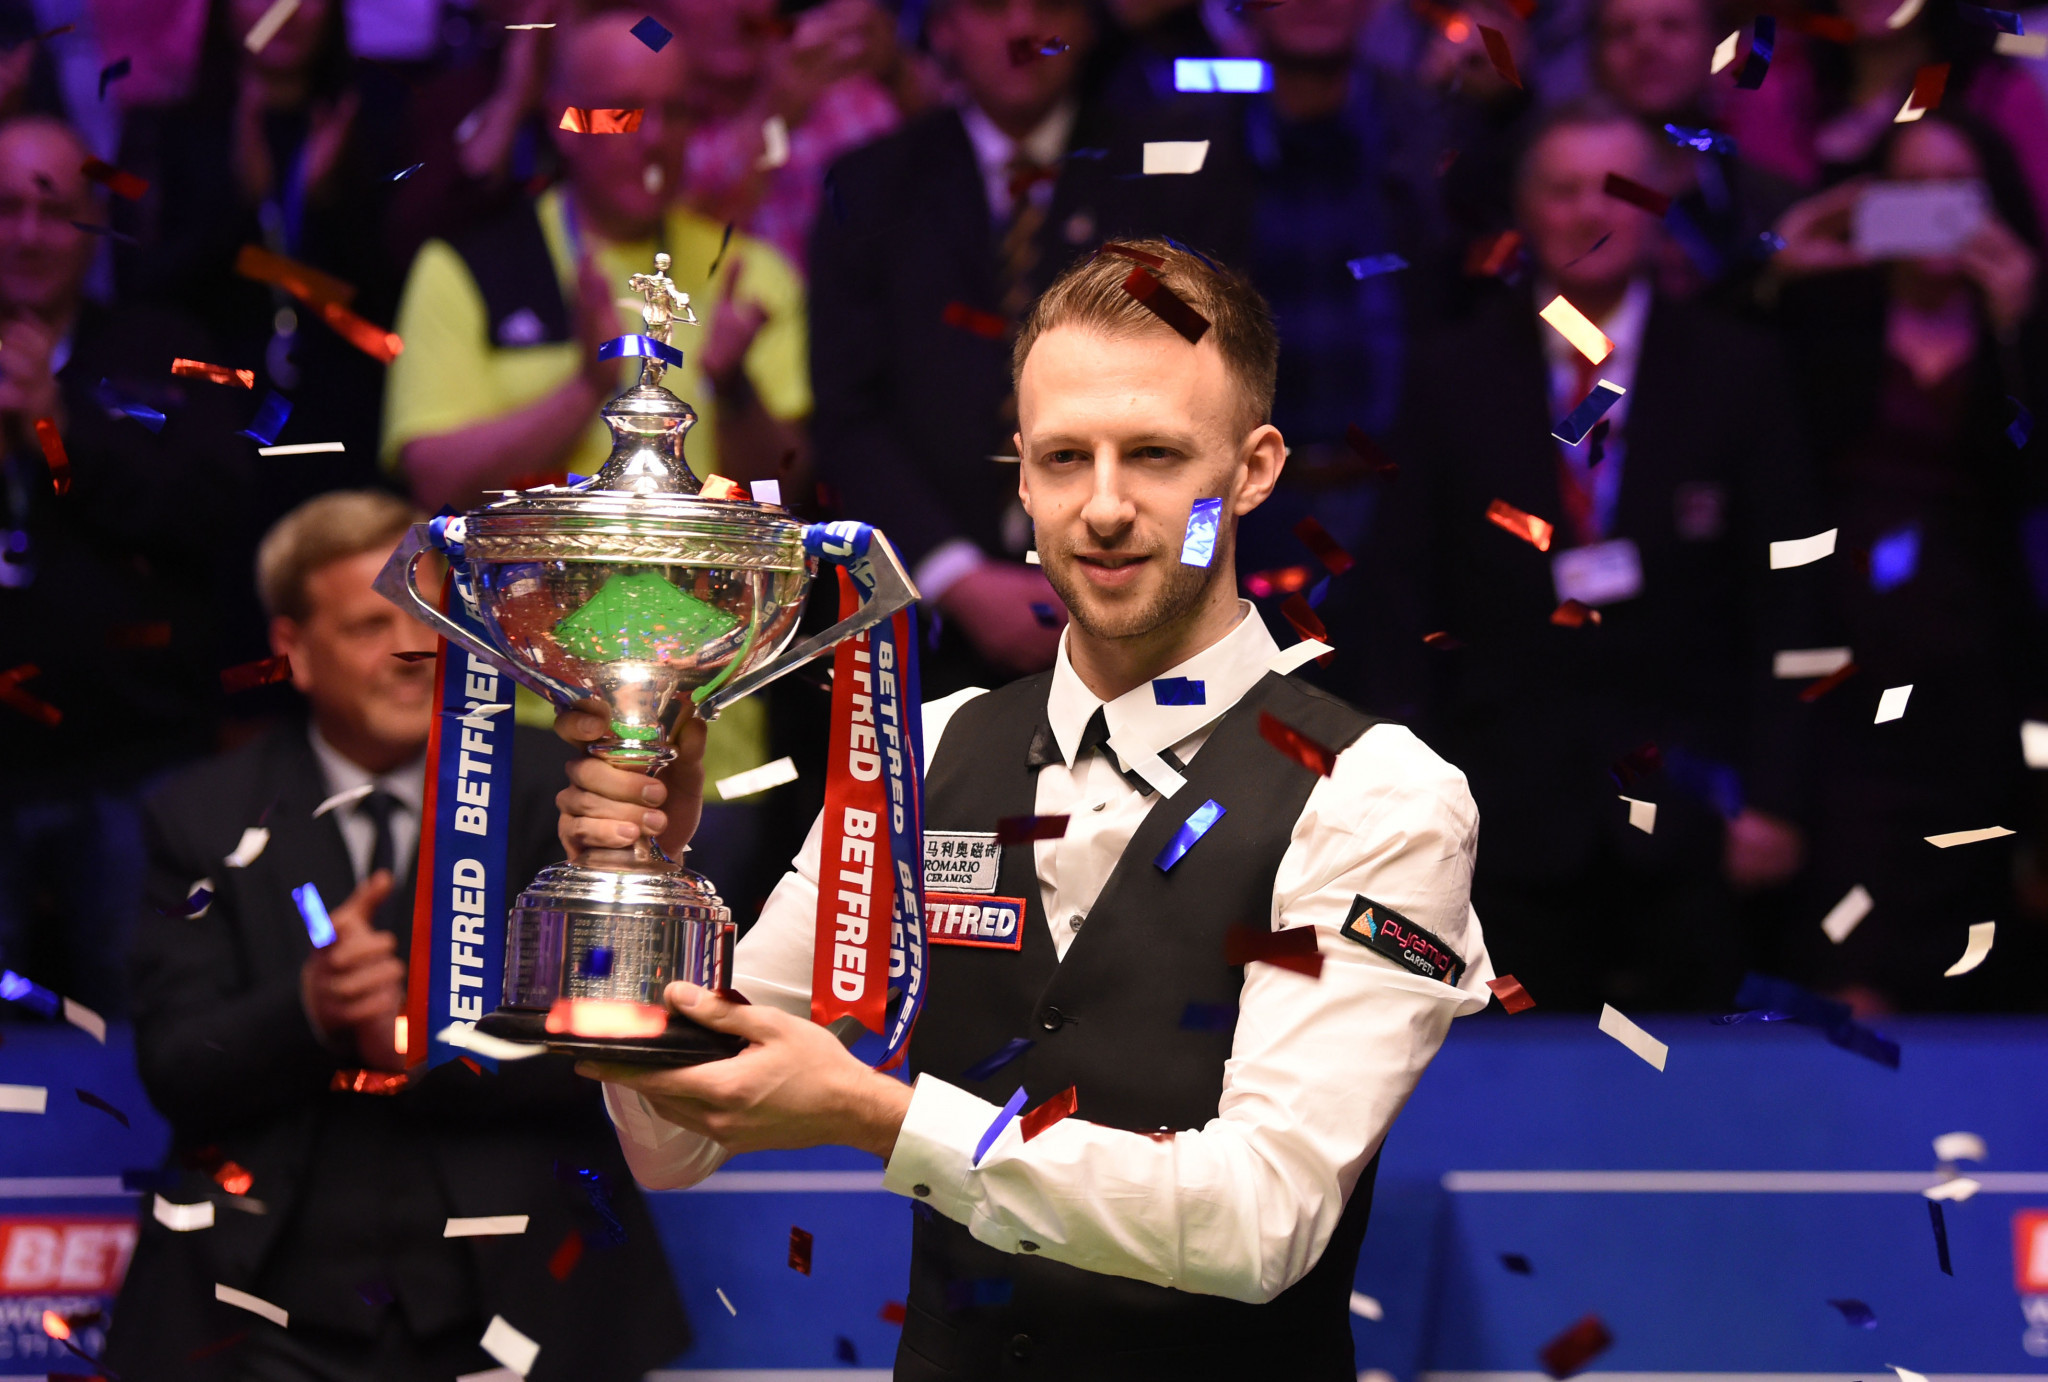 WST hopeful of holding World Snooker Championship with fans in attendance